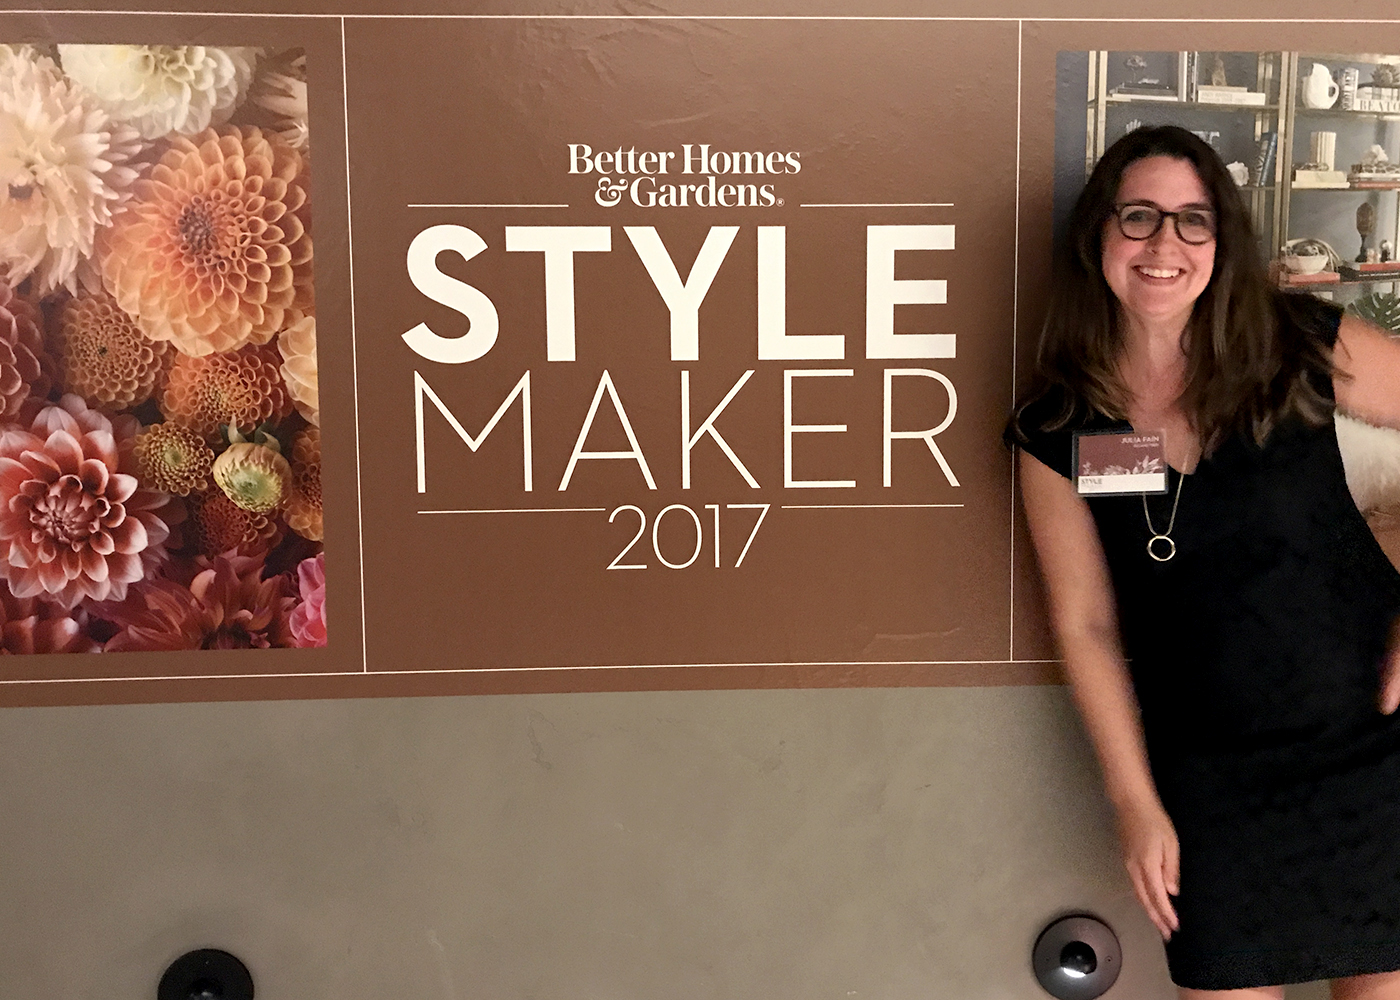 Julia Fain at cocktail hour at BHG Stylemaker 2017